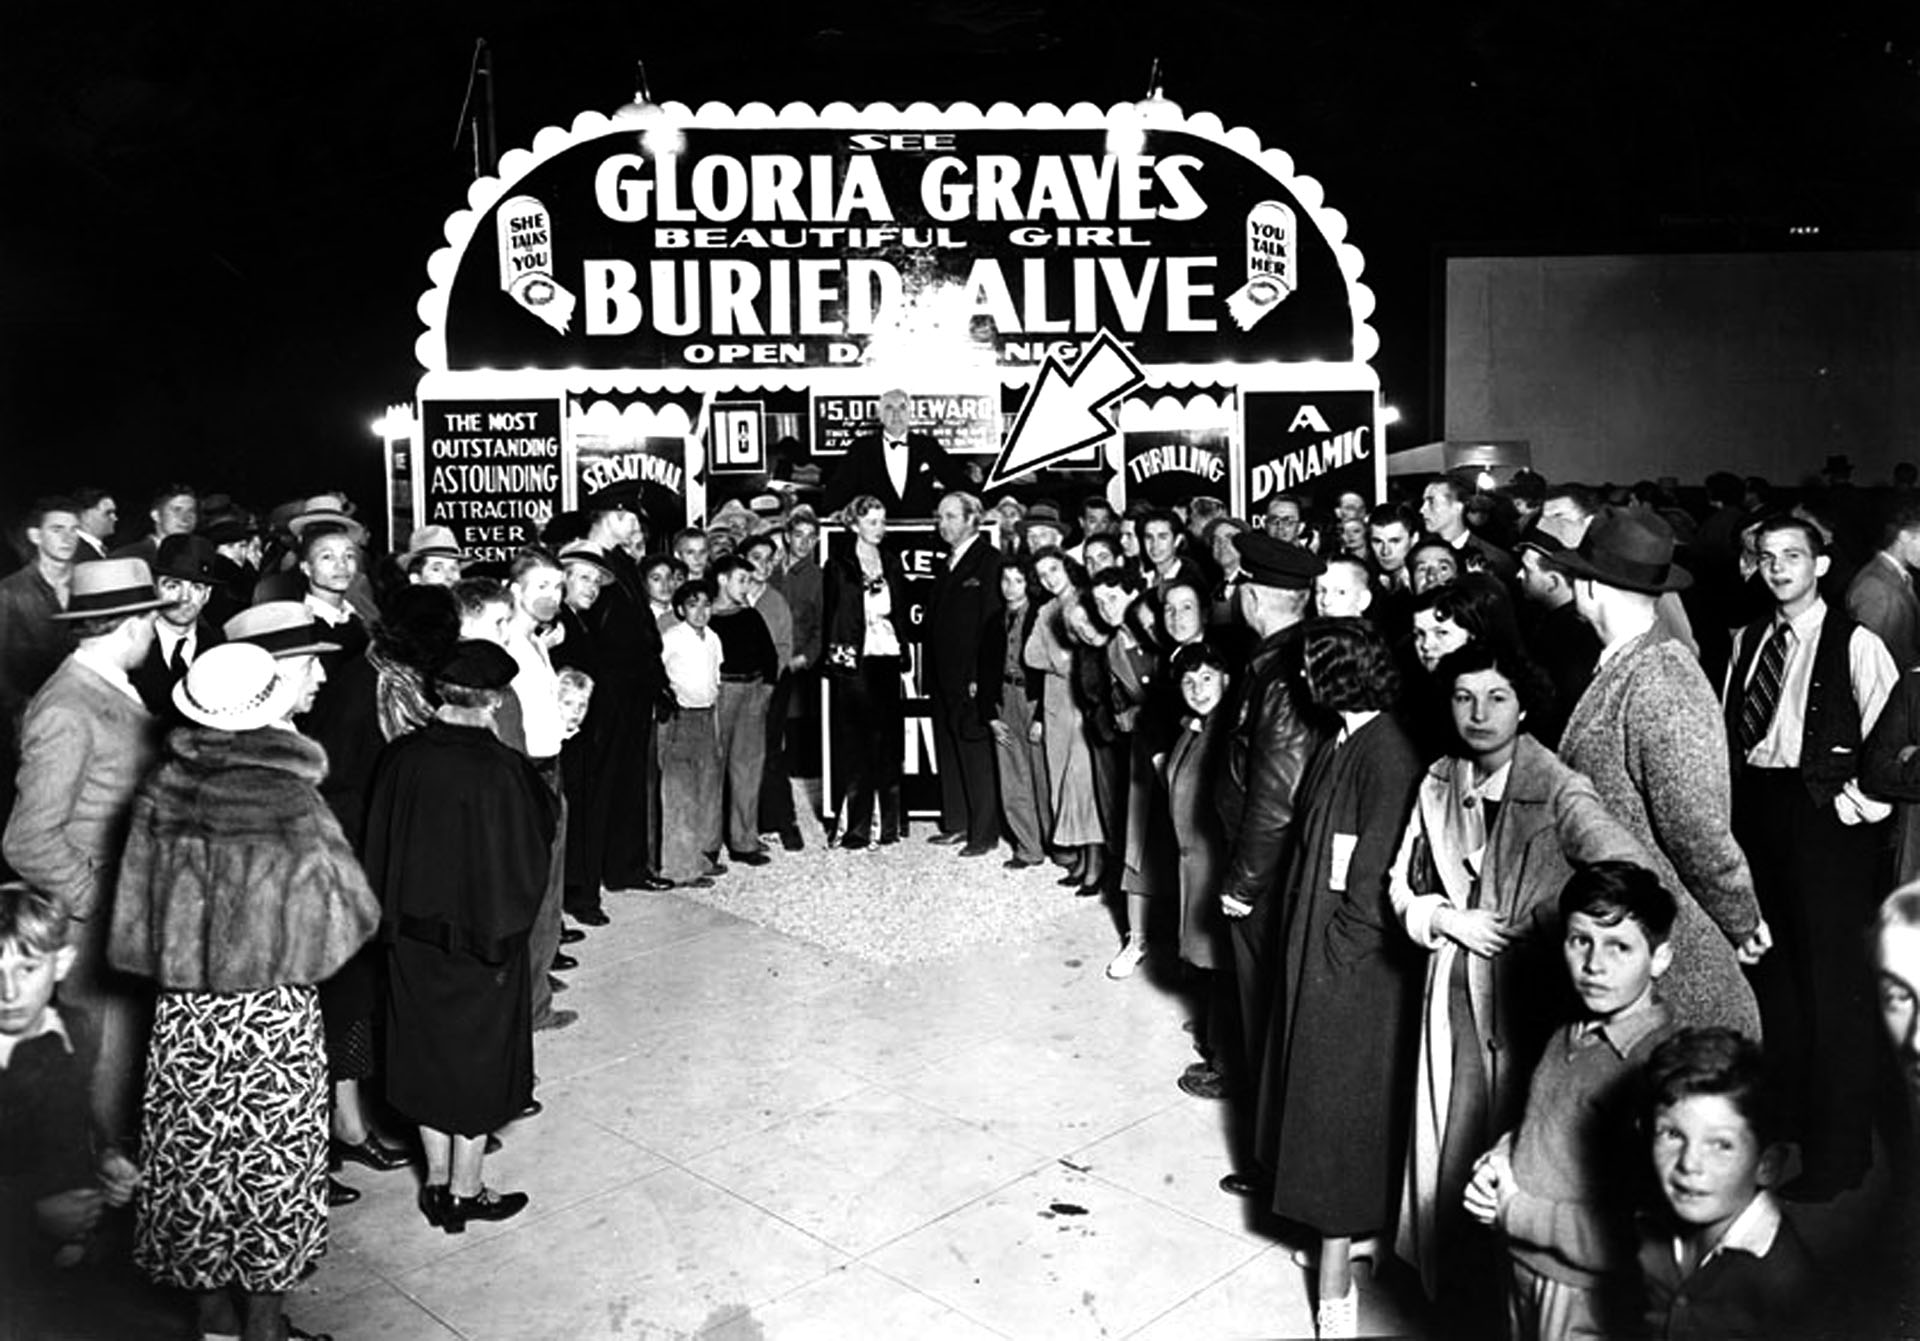 Mysterious Mr. Q. The arrow points out Robert Godwin (also known was Mr. Q) standing beside Gloria Graves at her burial site. Photograph courtesy of Herald-Examiner Collection, Los Angeles Public Library